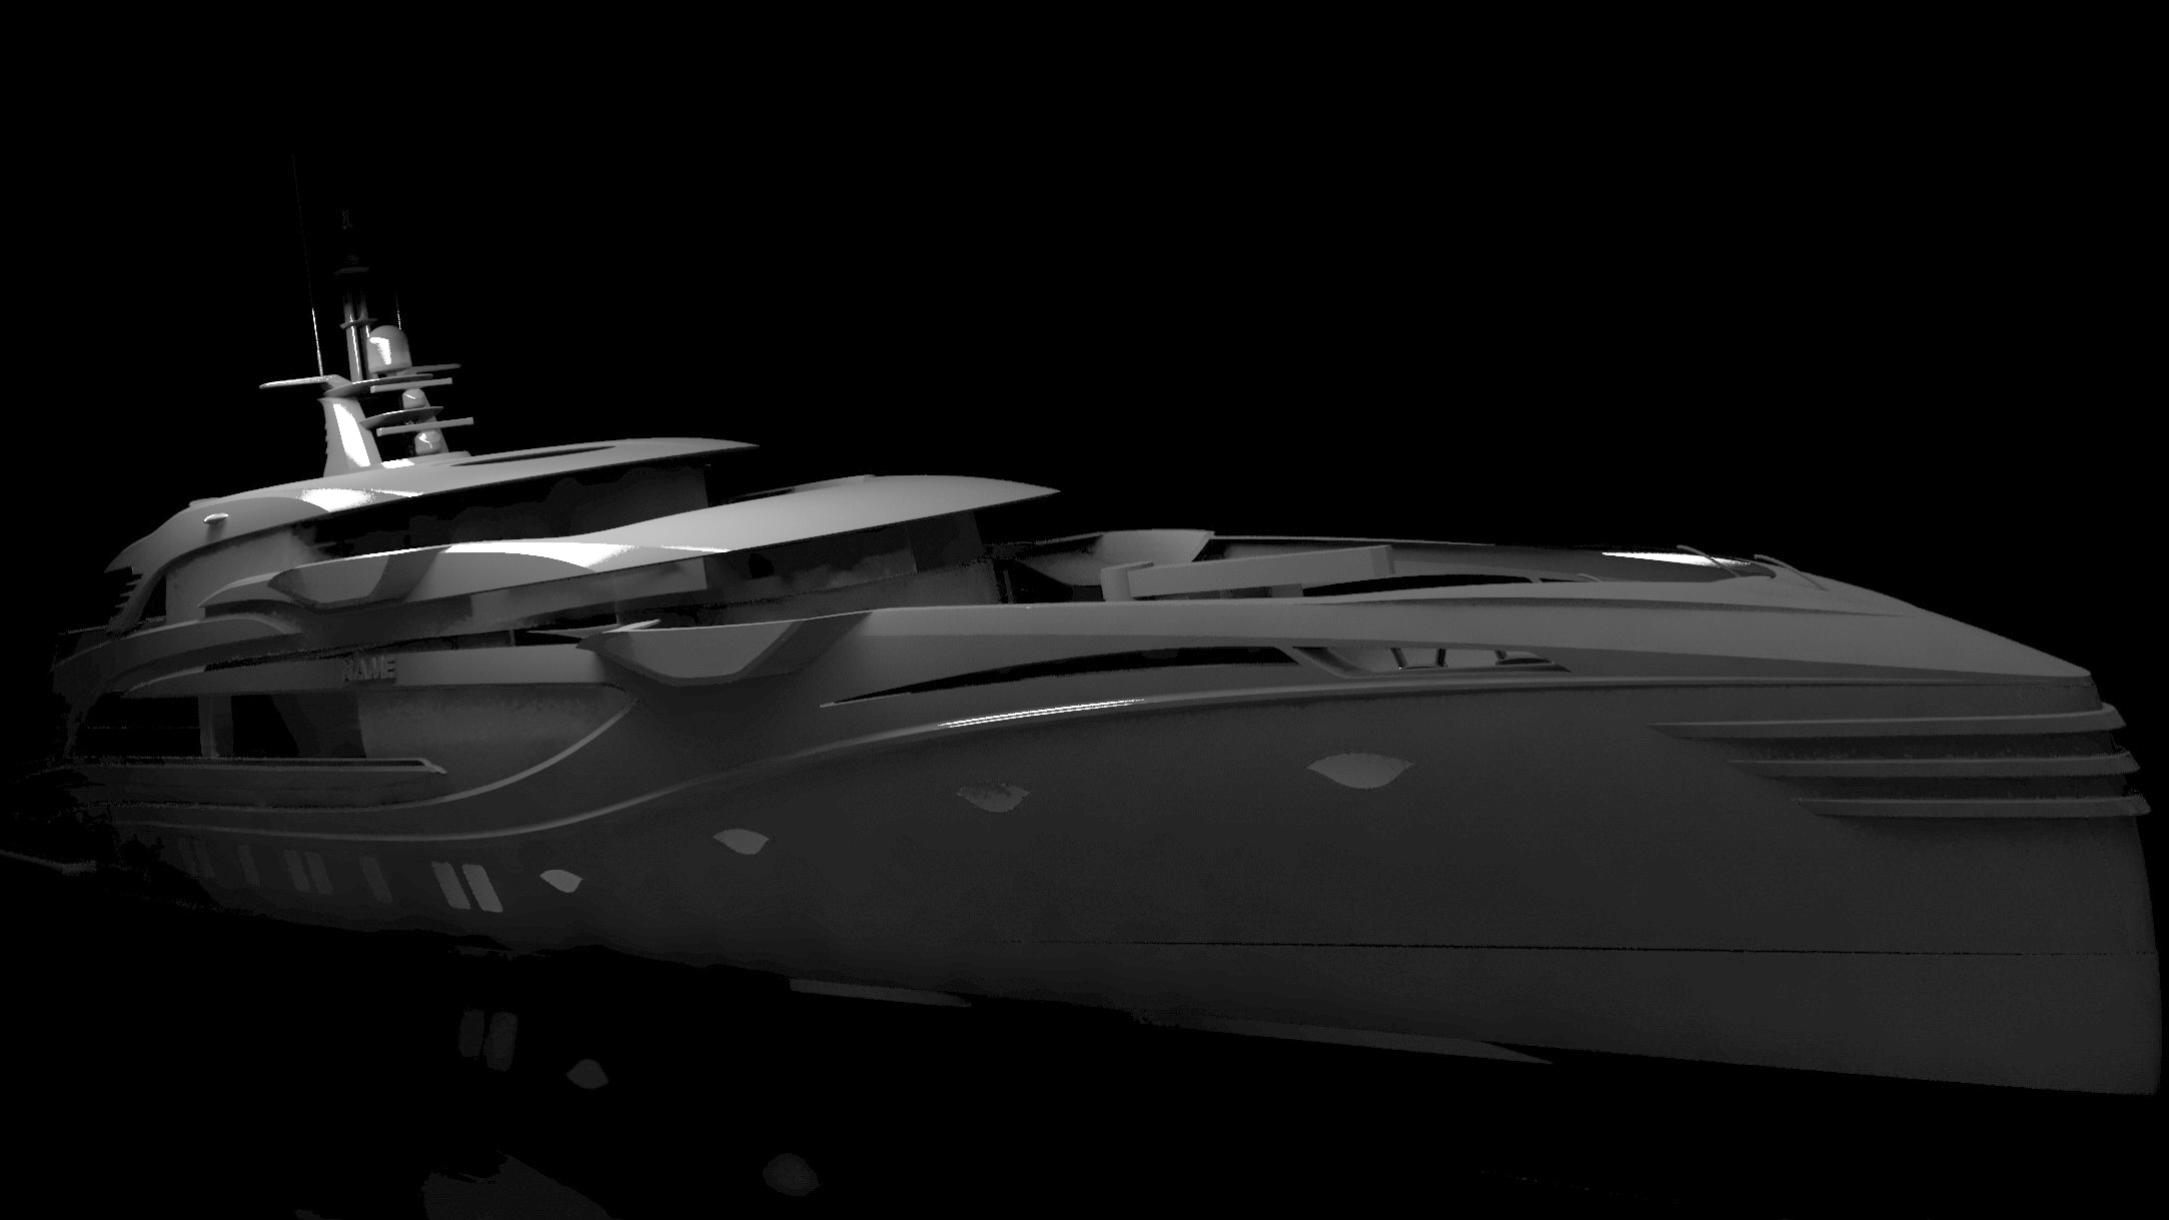 project phi motoryacht royal huisman 55m 2021 rendering